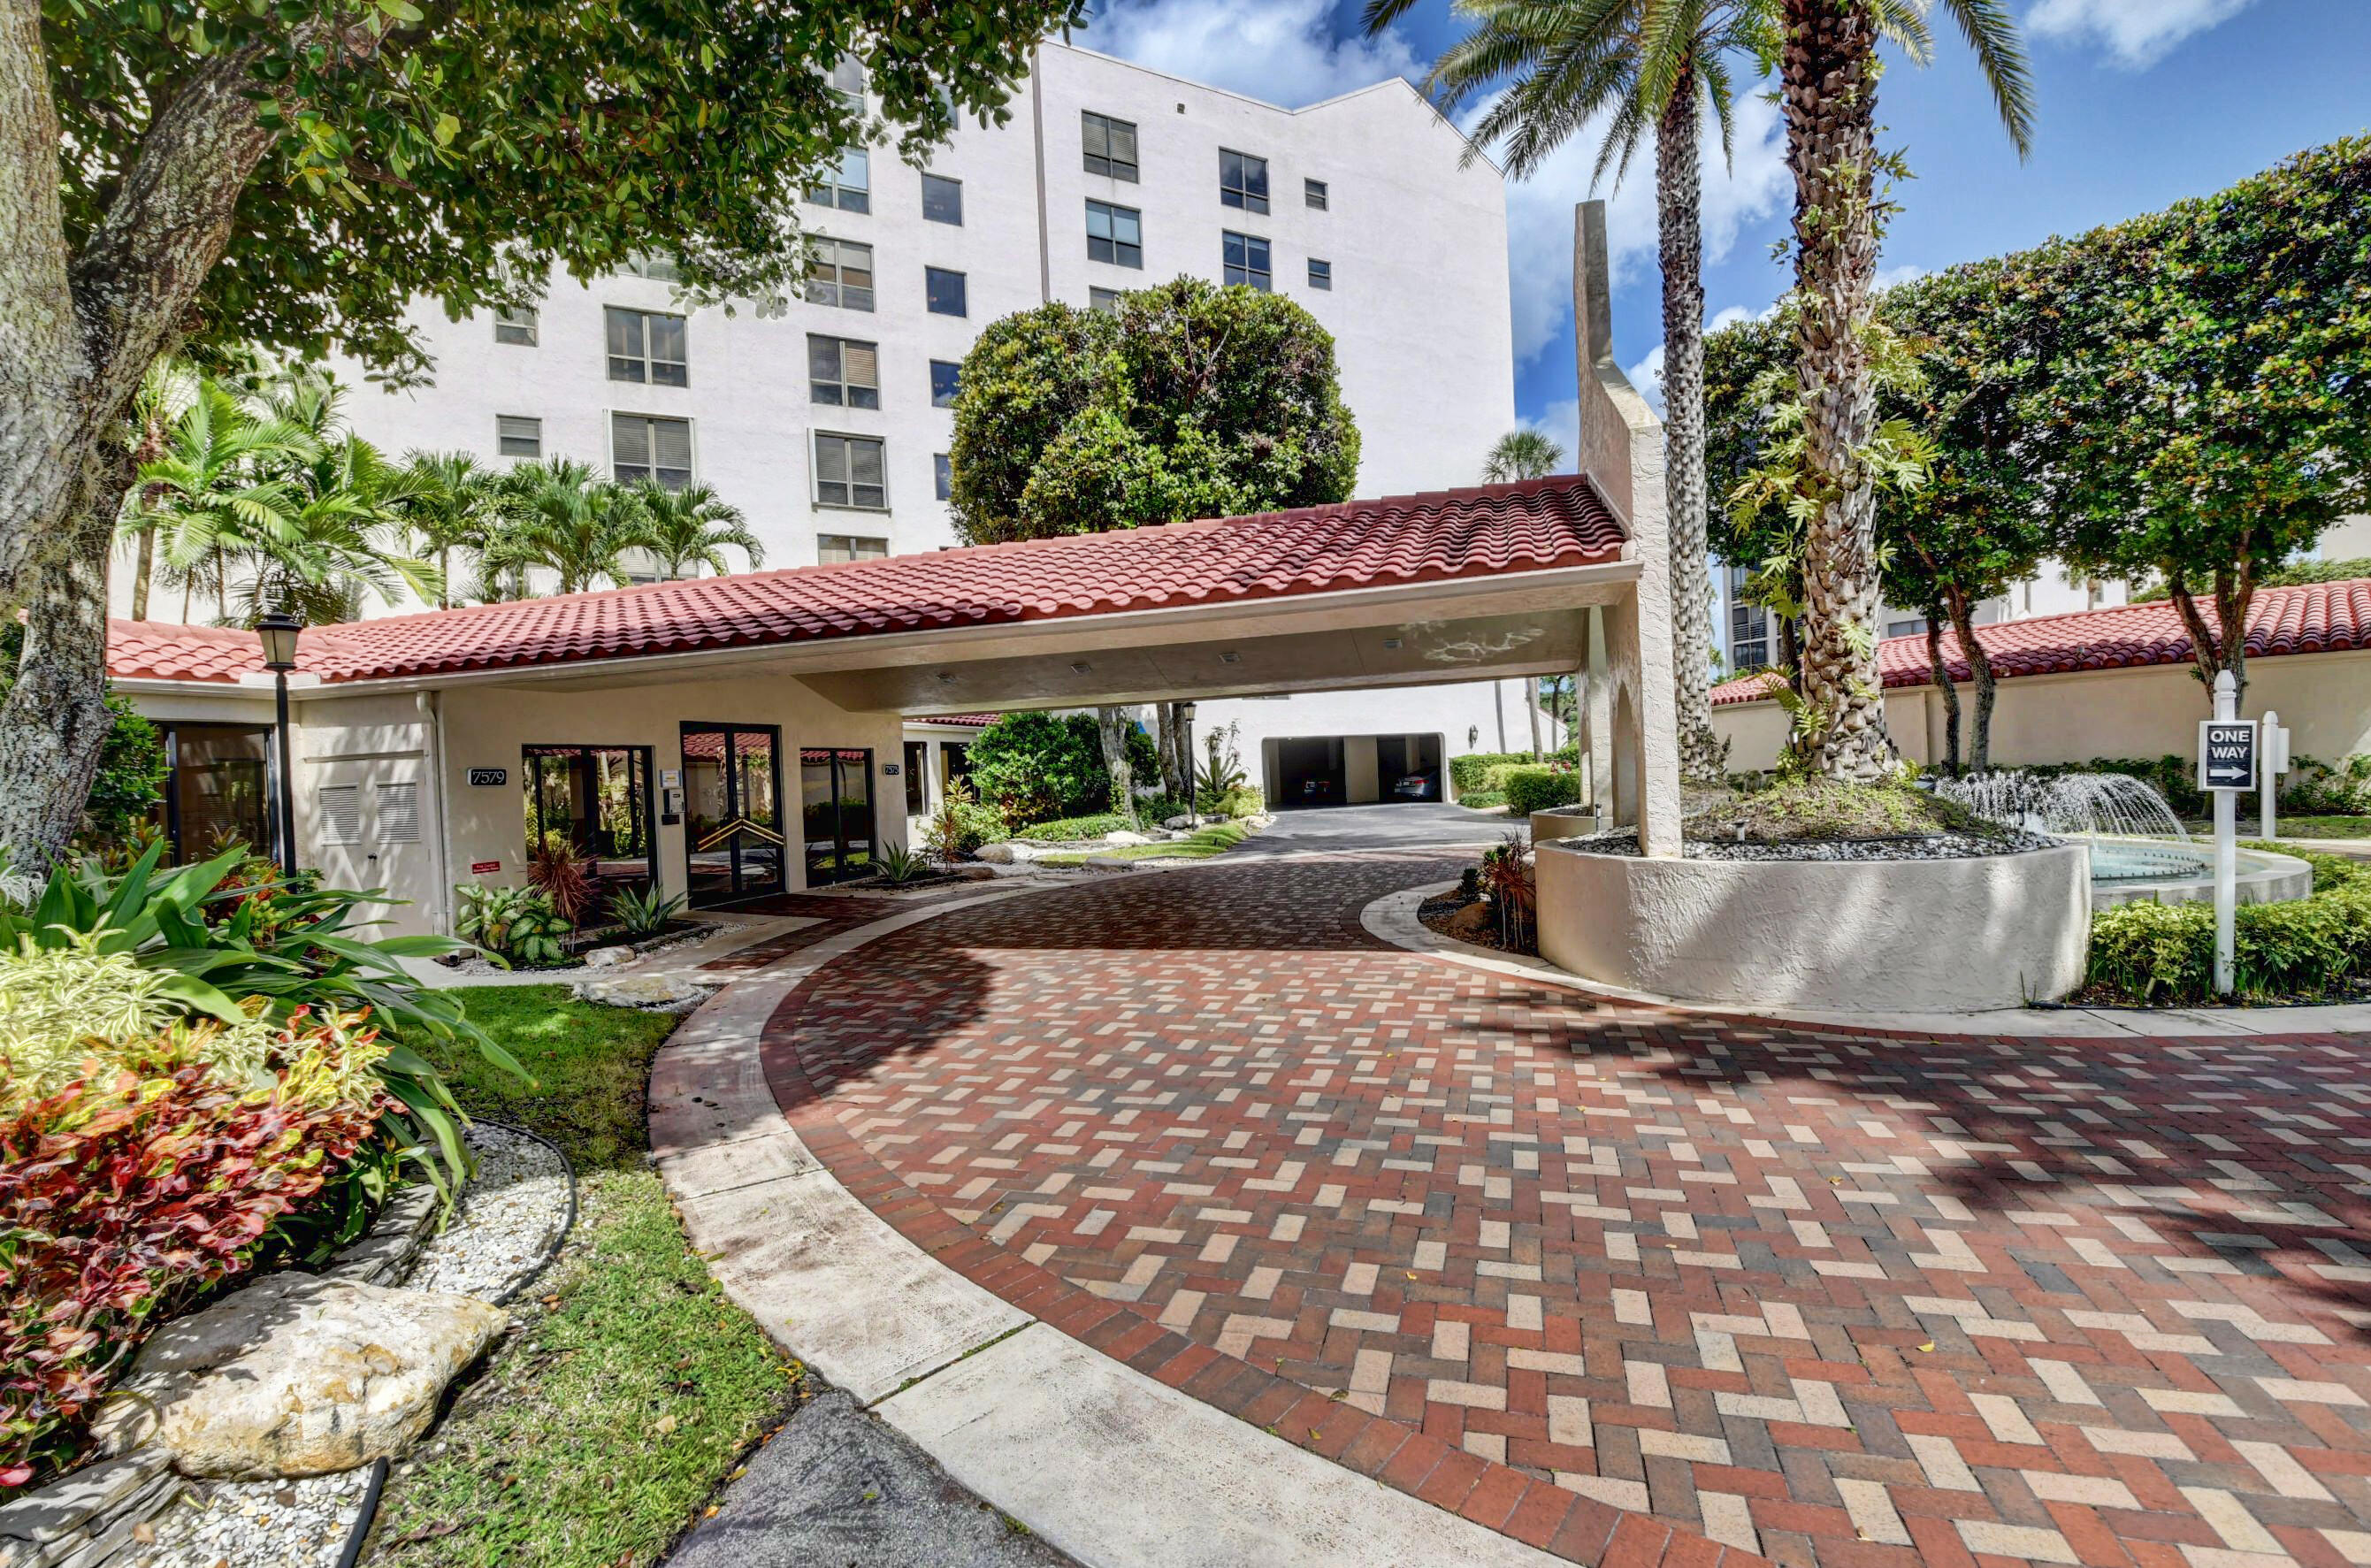 7579  Imperial Drive 702 For Sale 10754000, FL